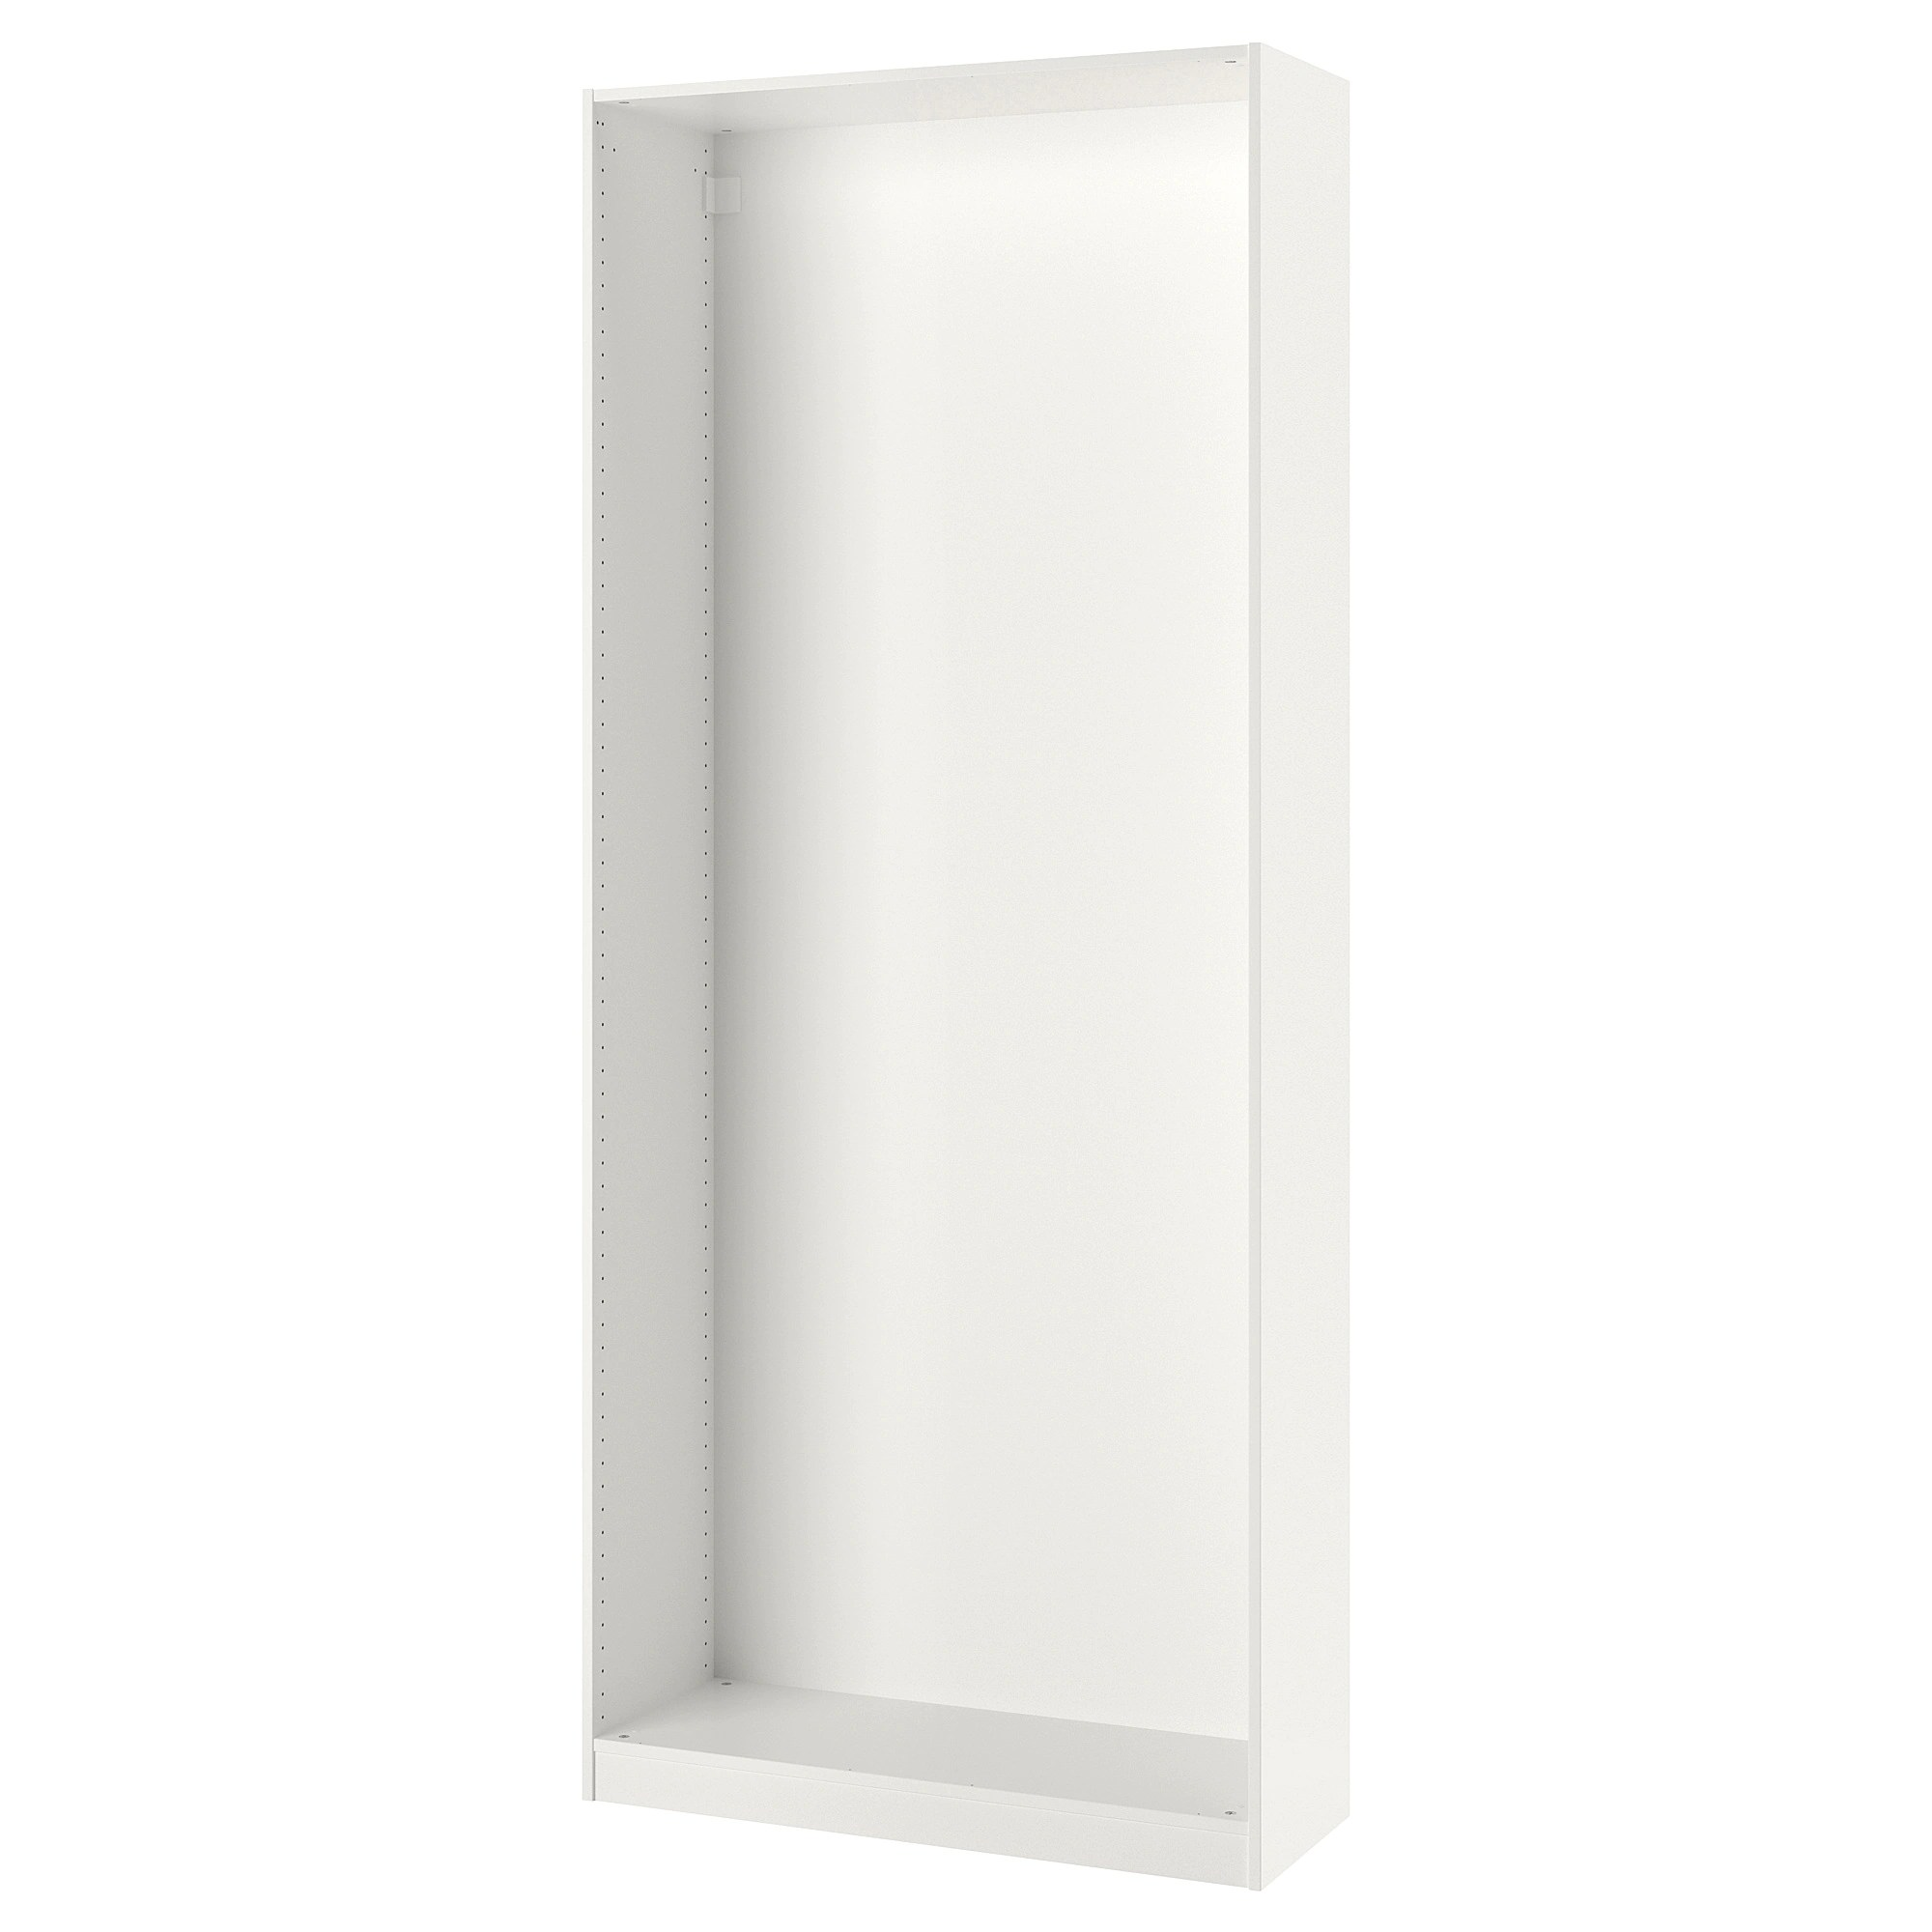 Ikea Pax Click And Collect Wardrobe Frame Pax White